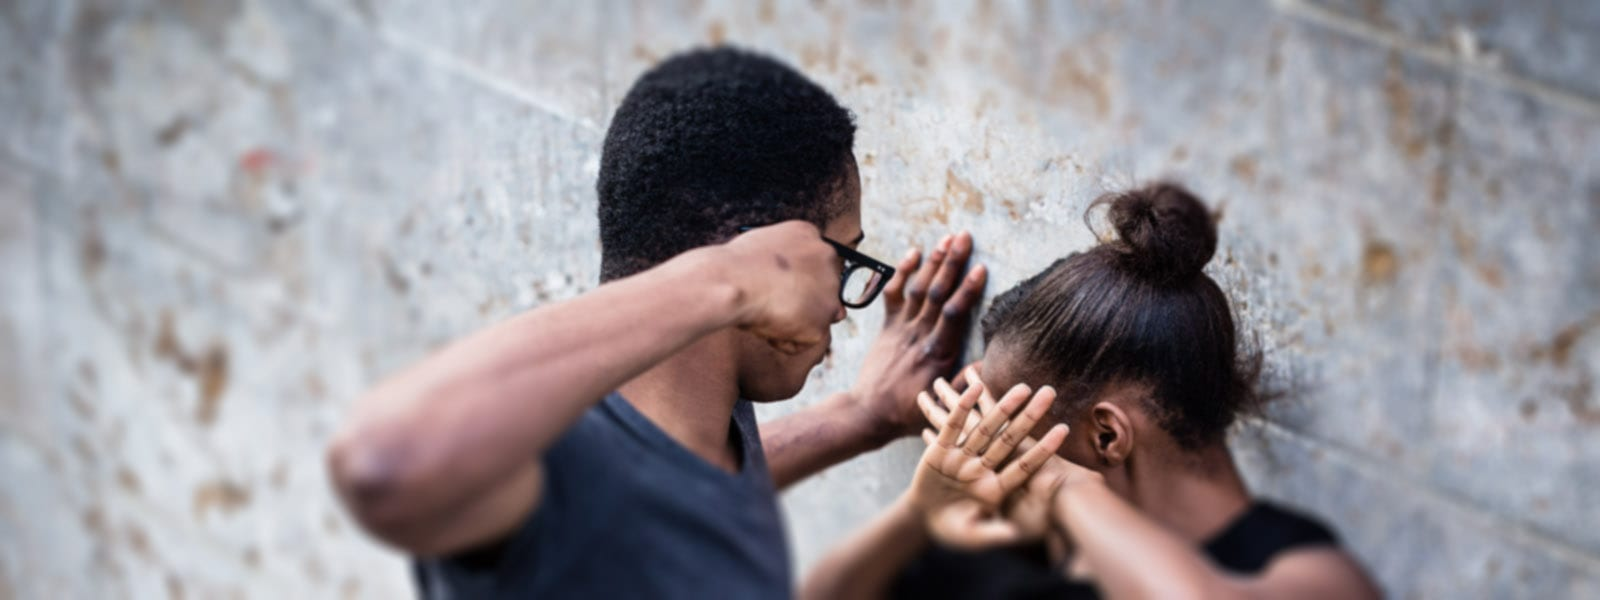 Ministry Condemns Violence Against Women